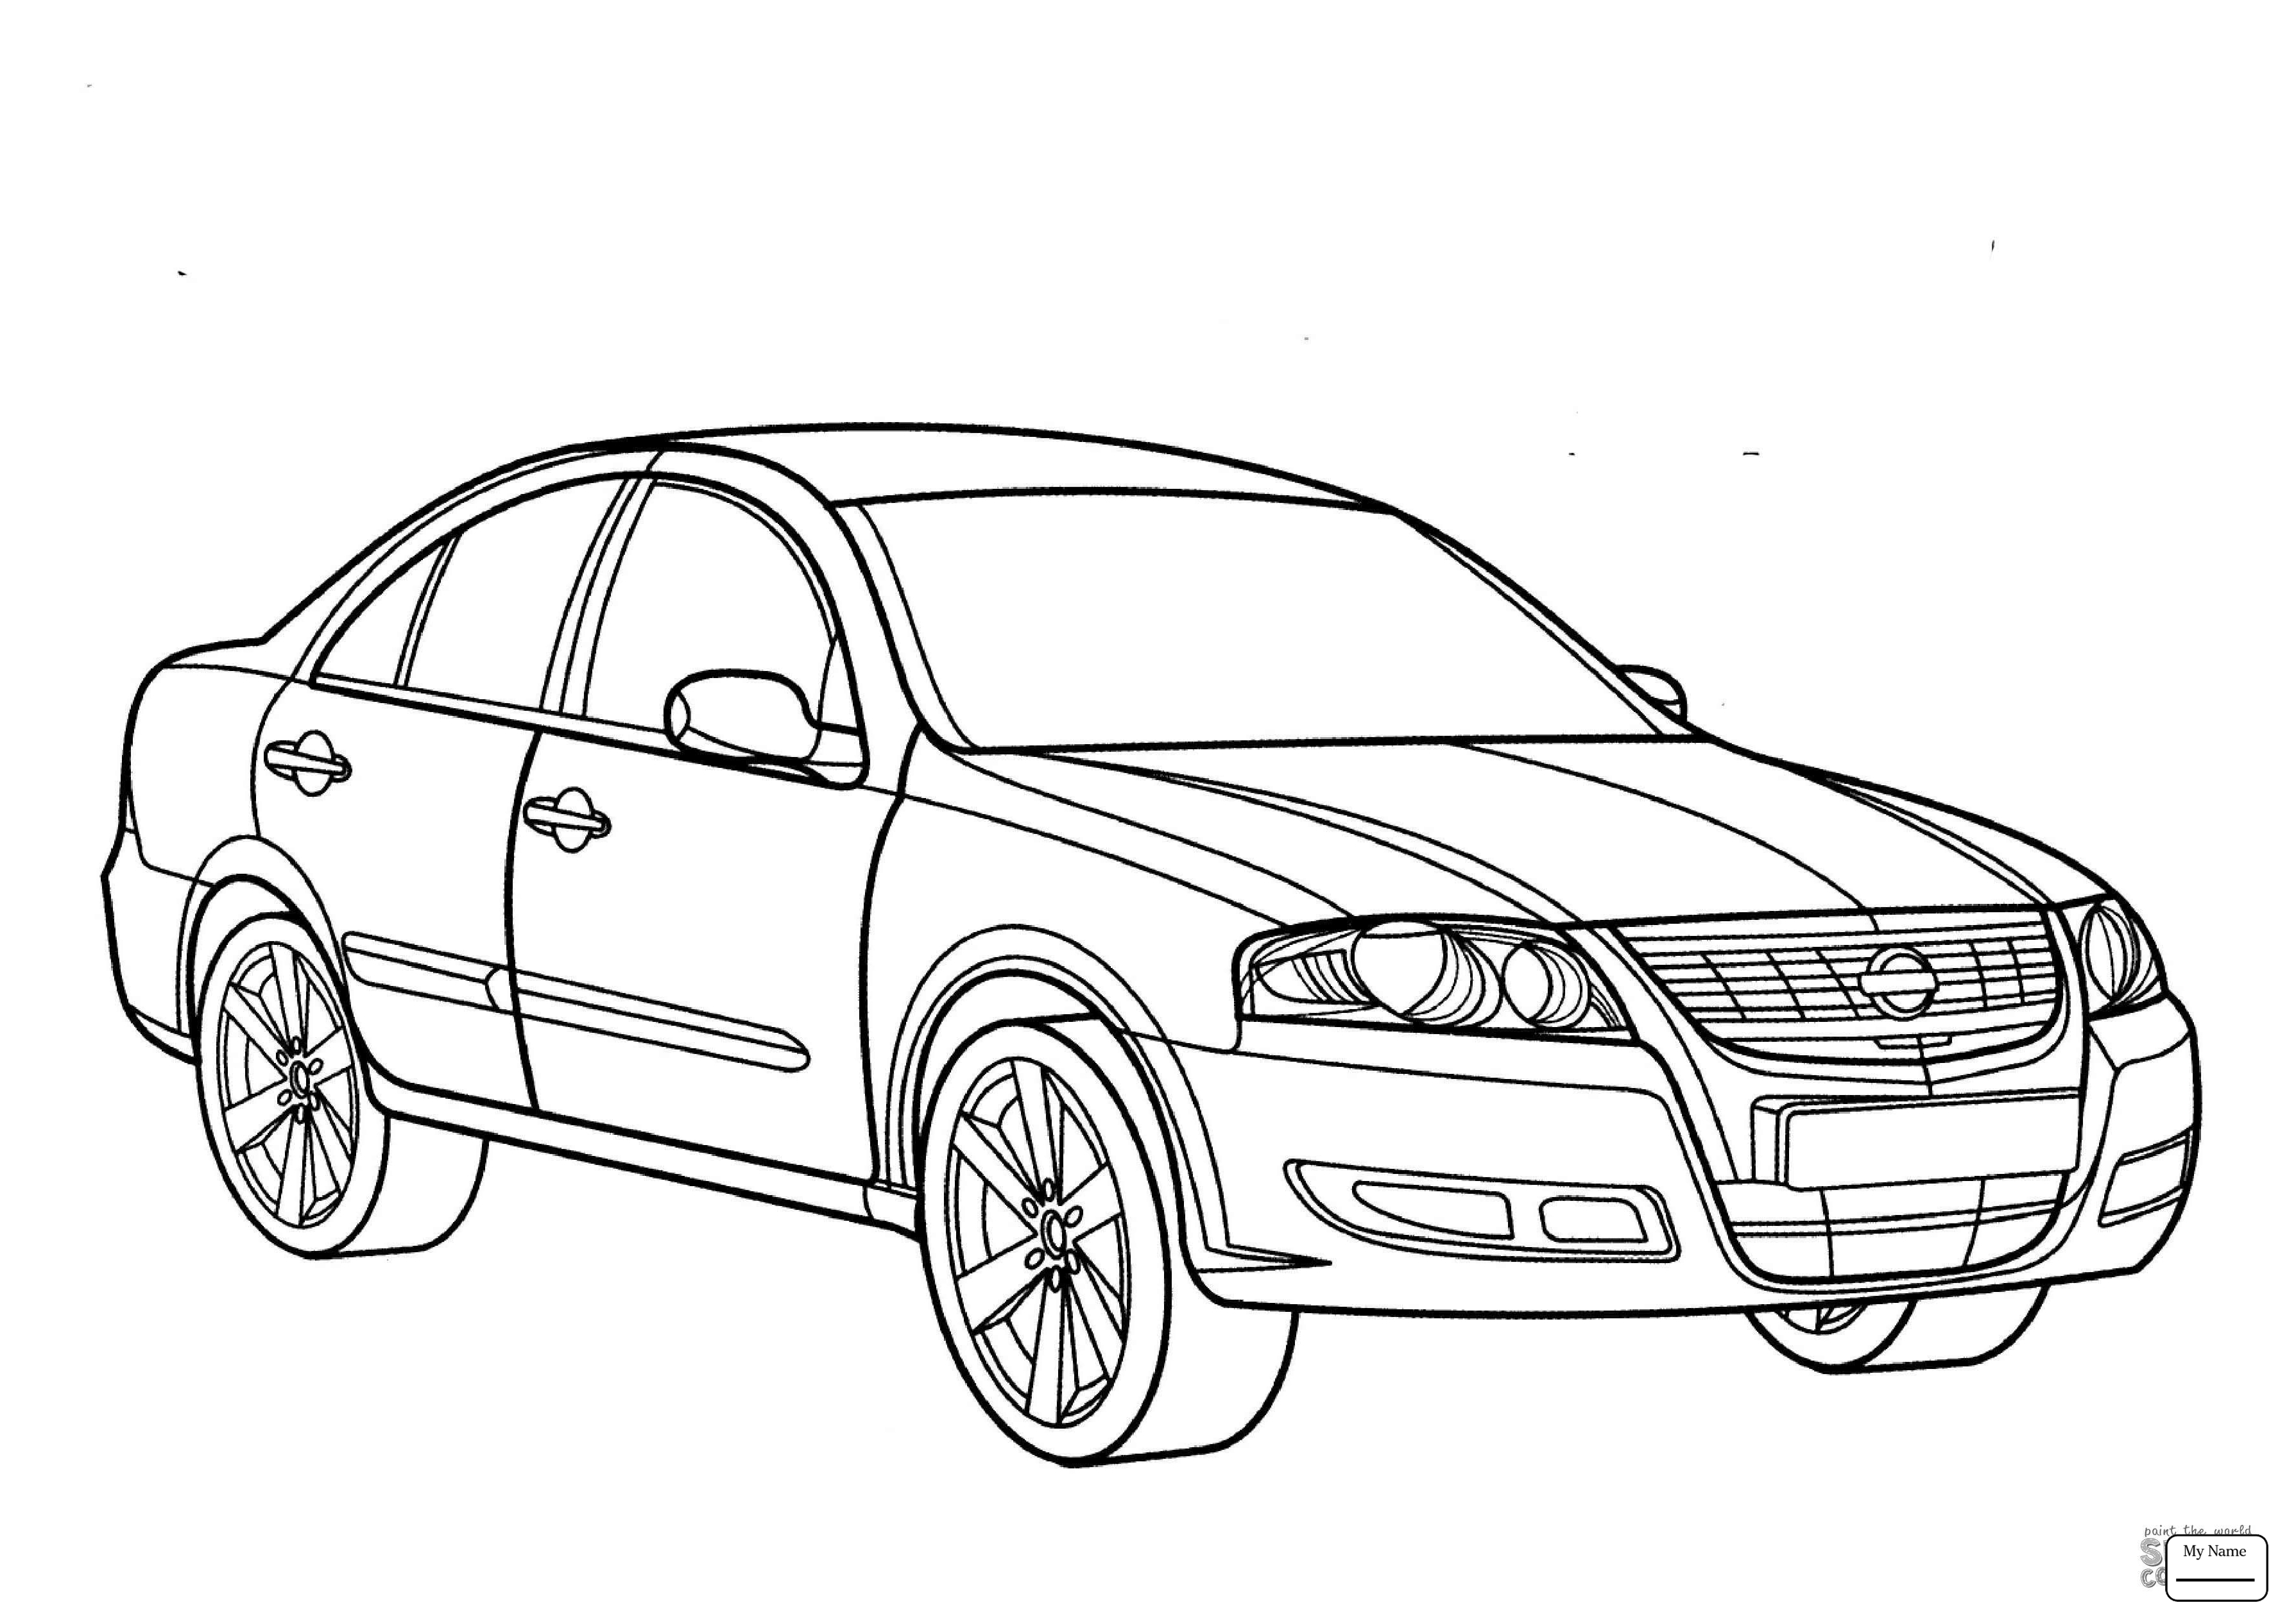 Nissan gtr drawing at getdrawings free for personal use nissan